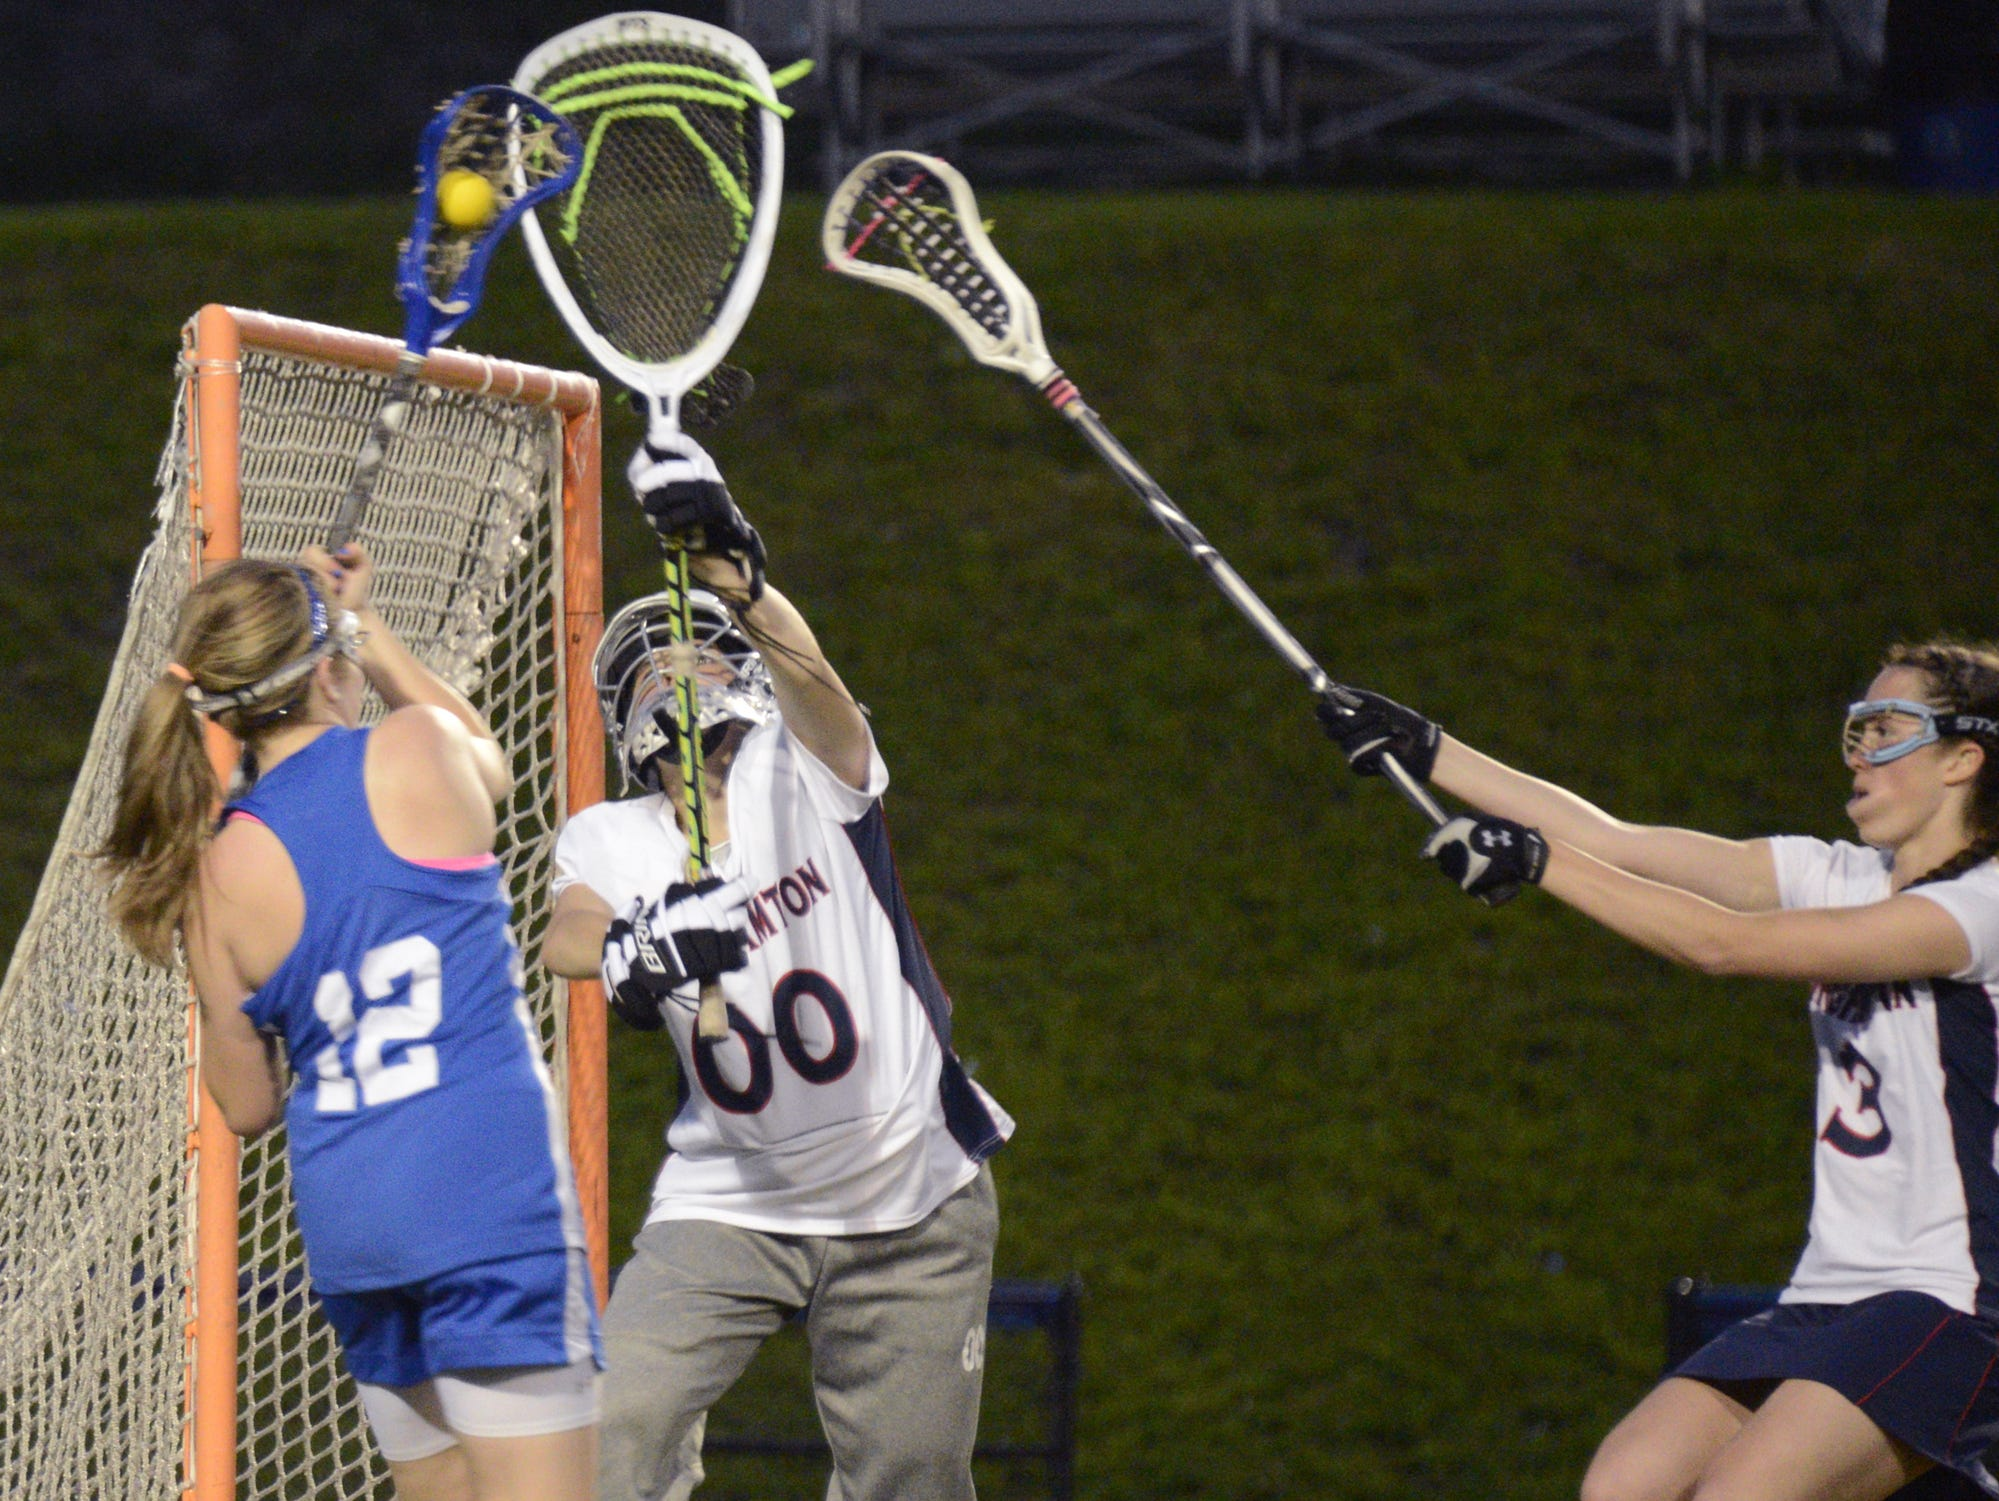 2013: Horseheads' Tess Sydlo attempts a shot on Binghamton goalie Deme Zervos, as Erin Holleran, also of Binghamton, chases from behind in the second half Wednesday at Alumni Stadium in Binghamton.